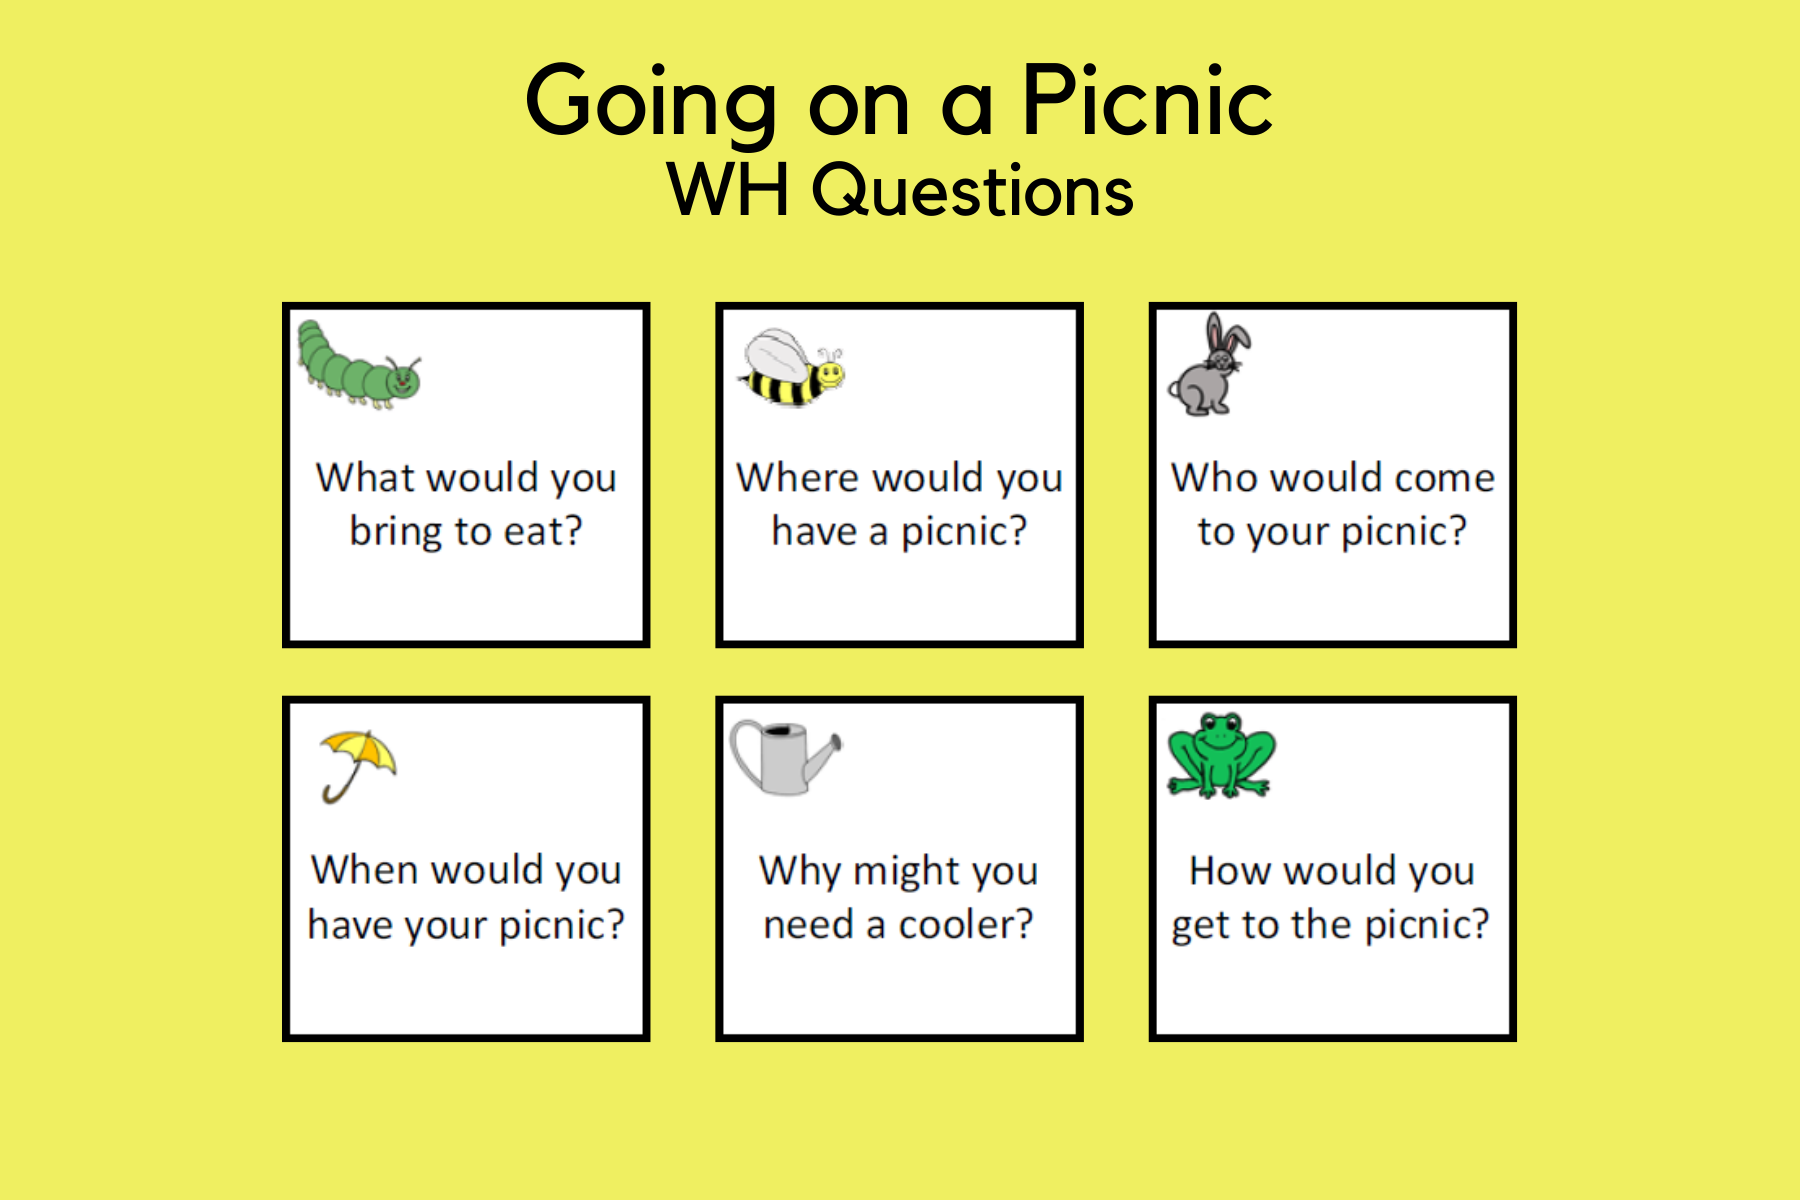 Going on a Picnic WH Questions